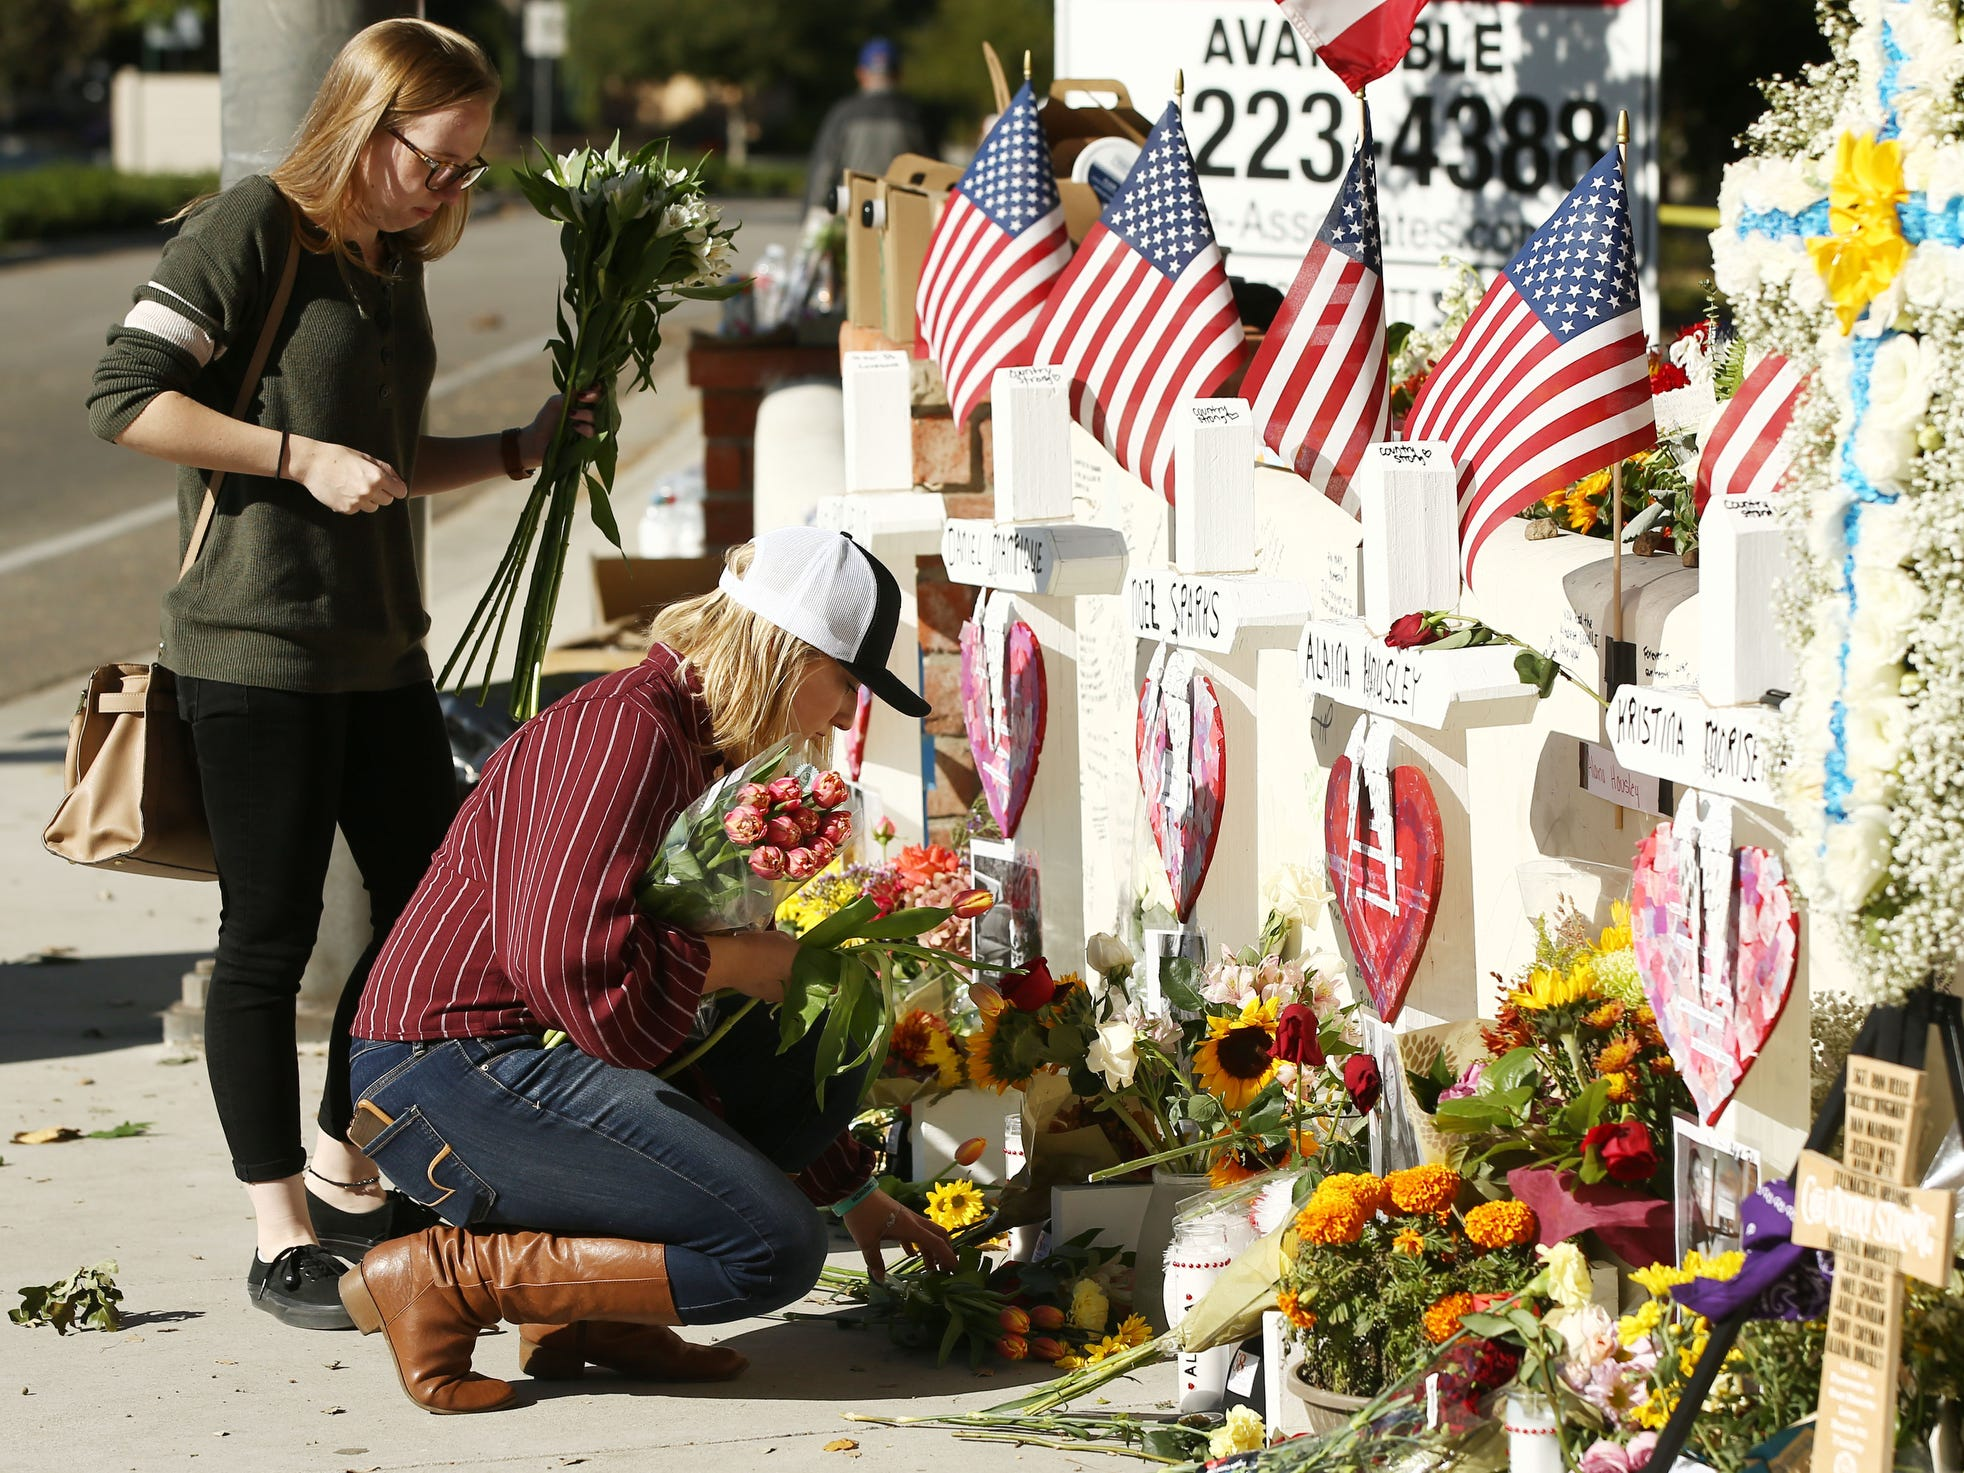 People pay their respects and bring flowers to the memorial to victims of the Borderline Bar and Grill massacre.